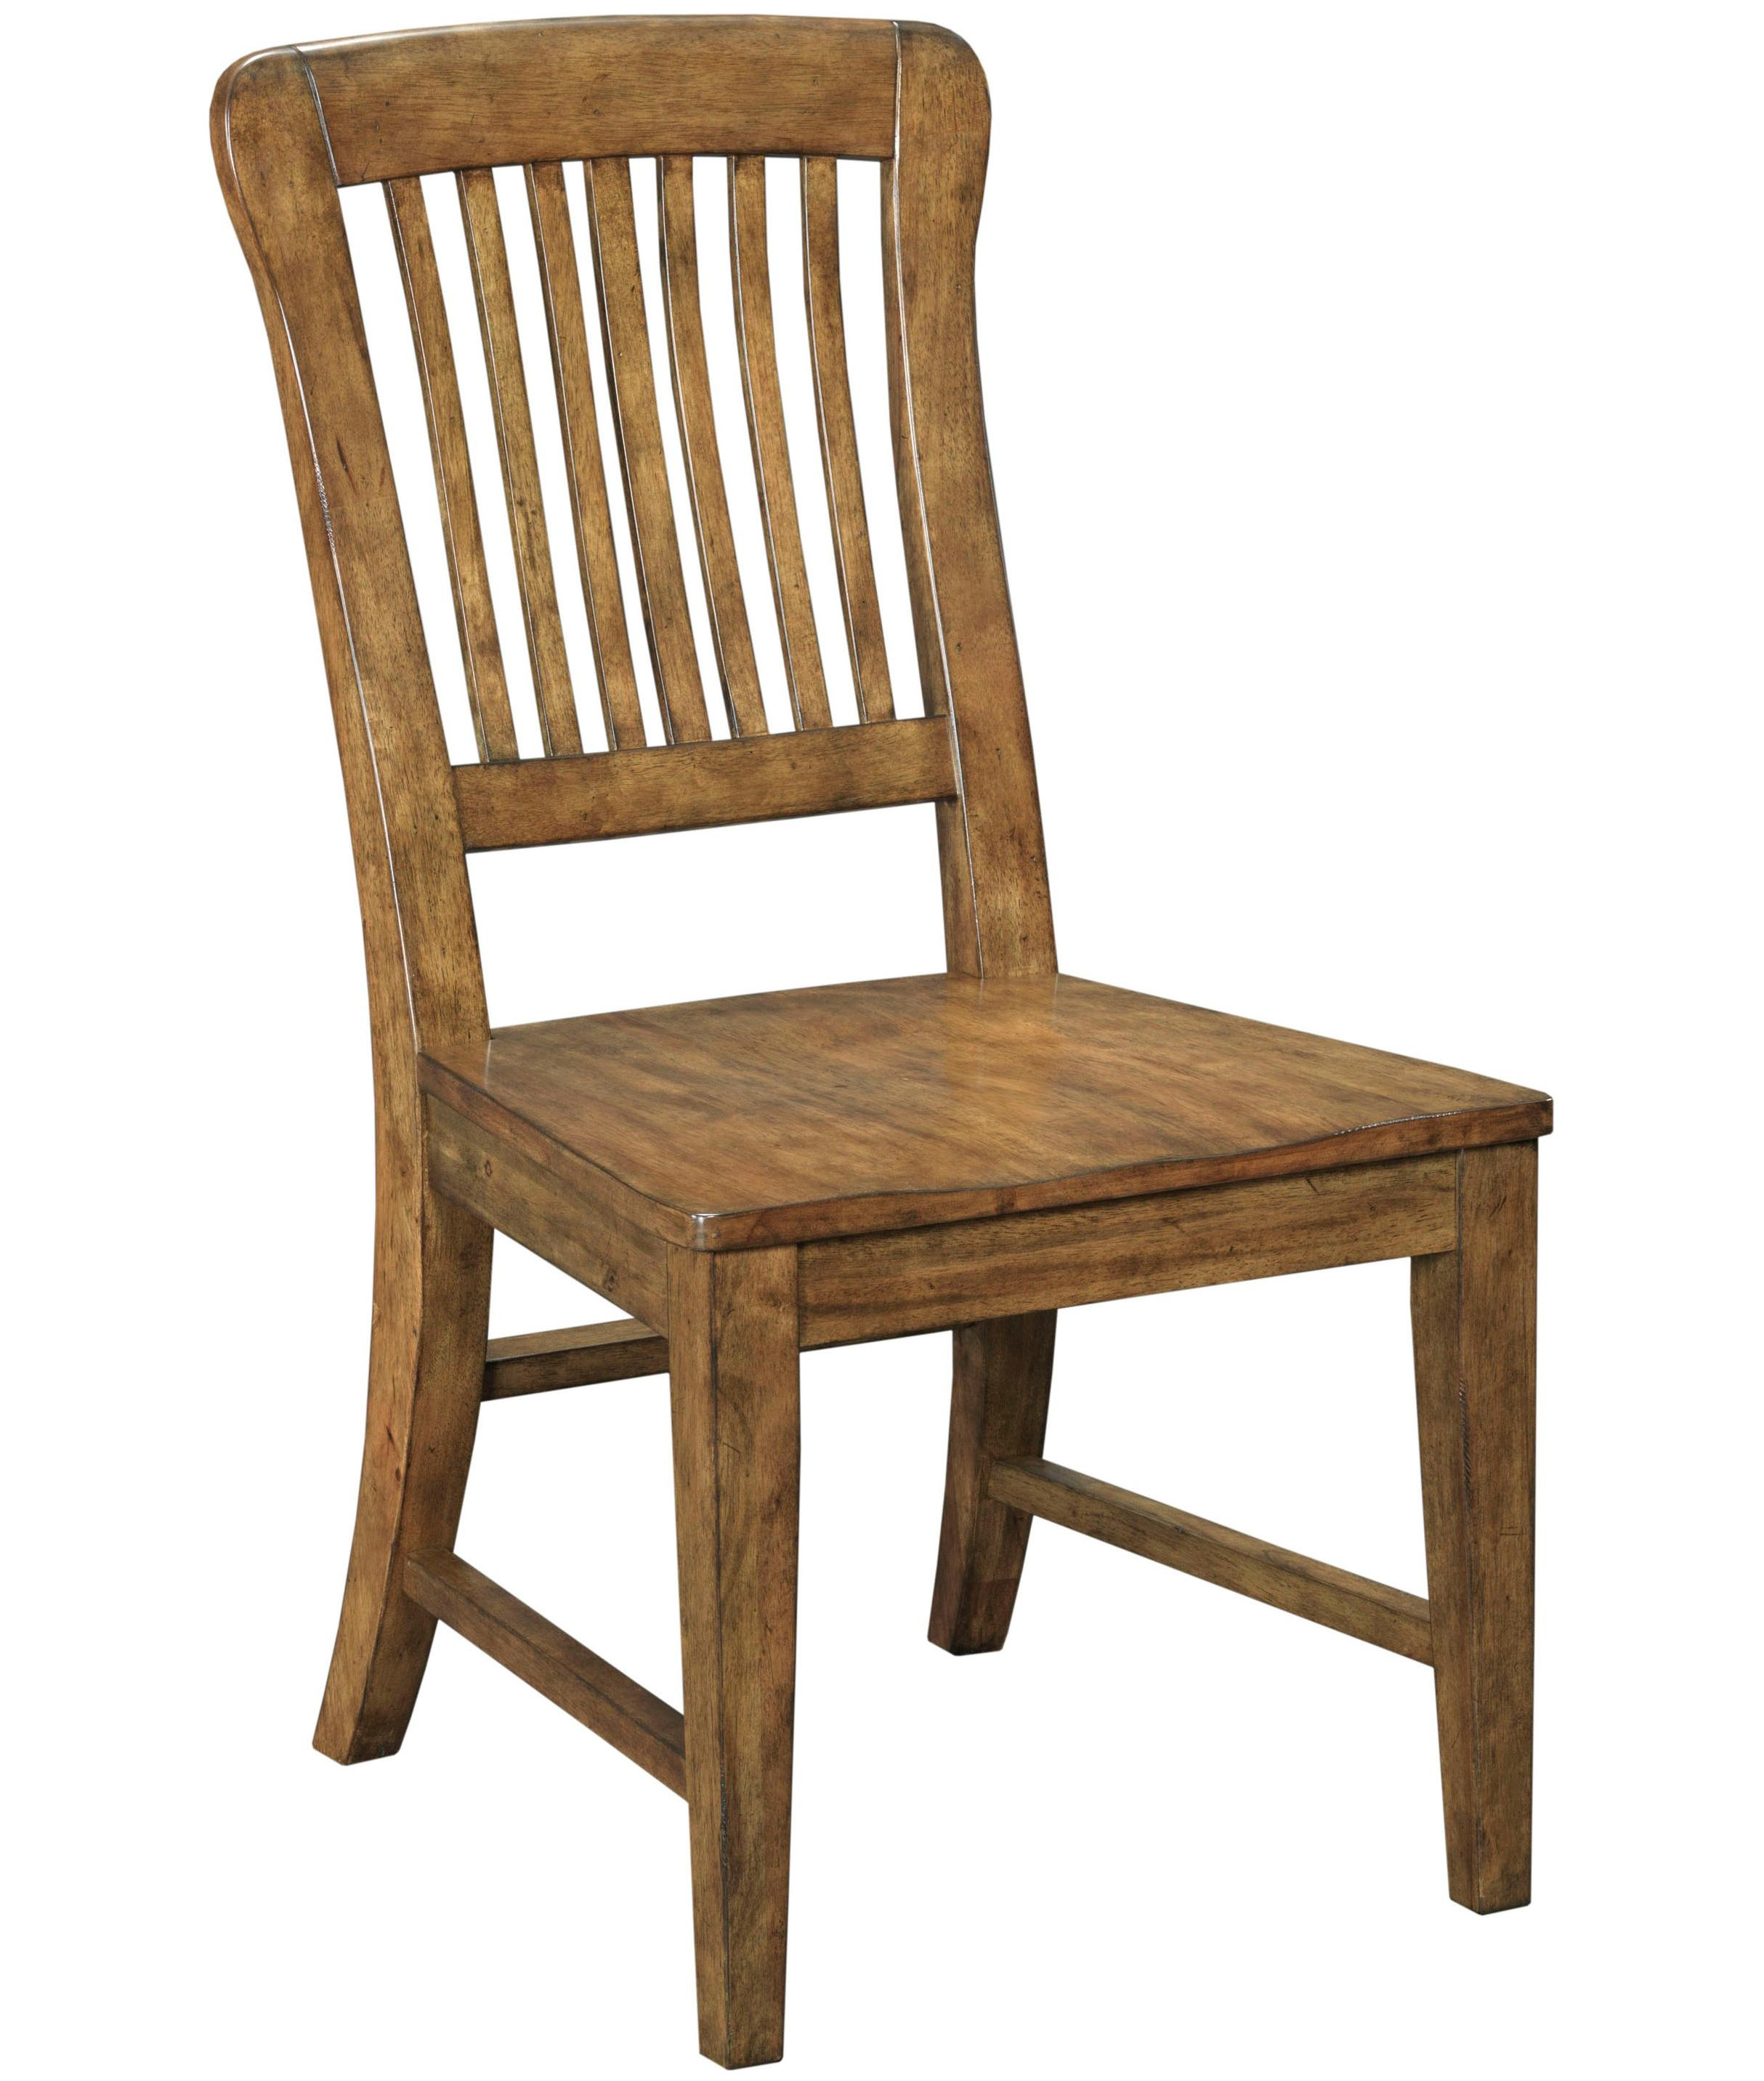 Broyhill Furniture New Vintage School House Wood Seat Side Chair - Item Number: 4808-581